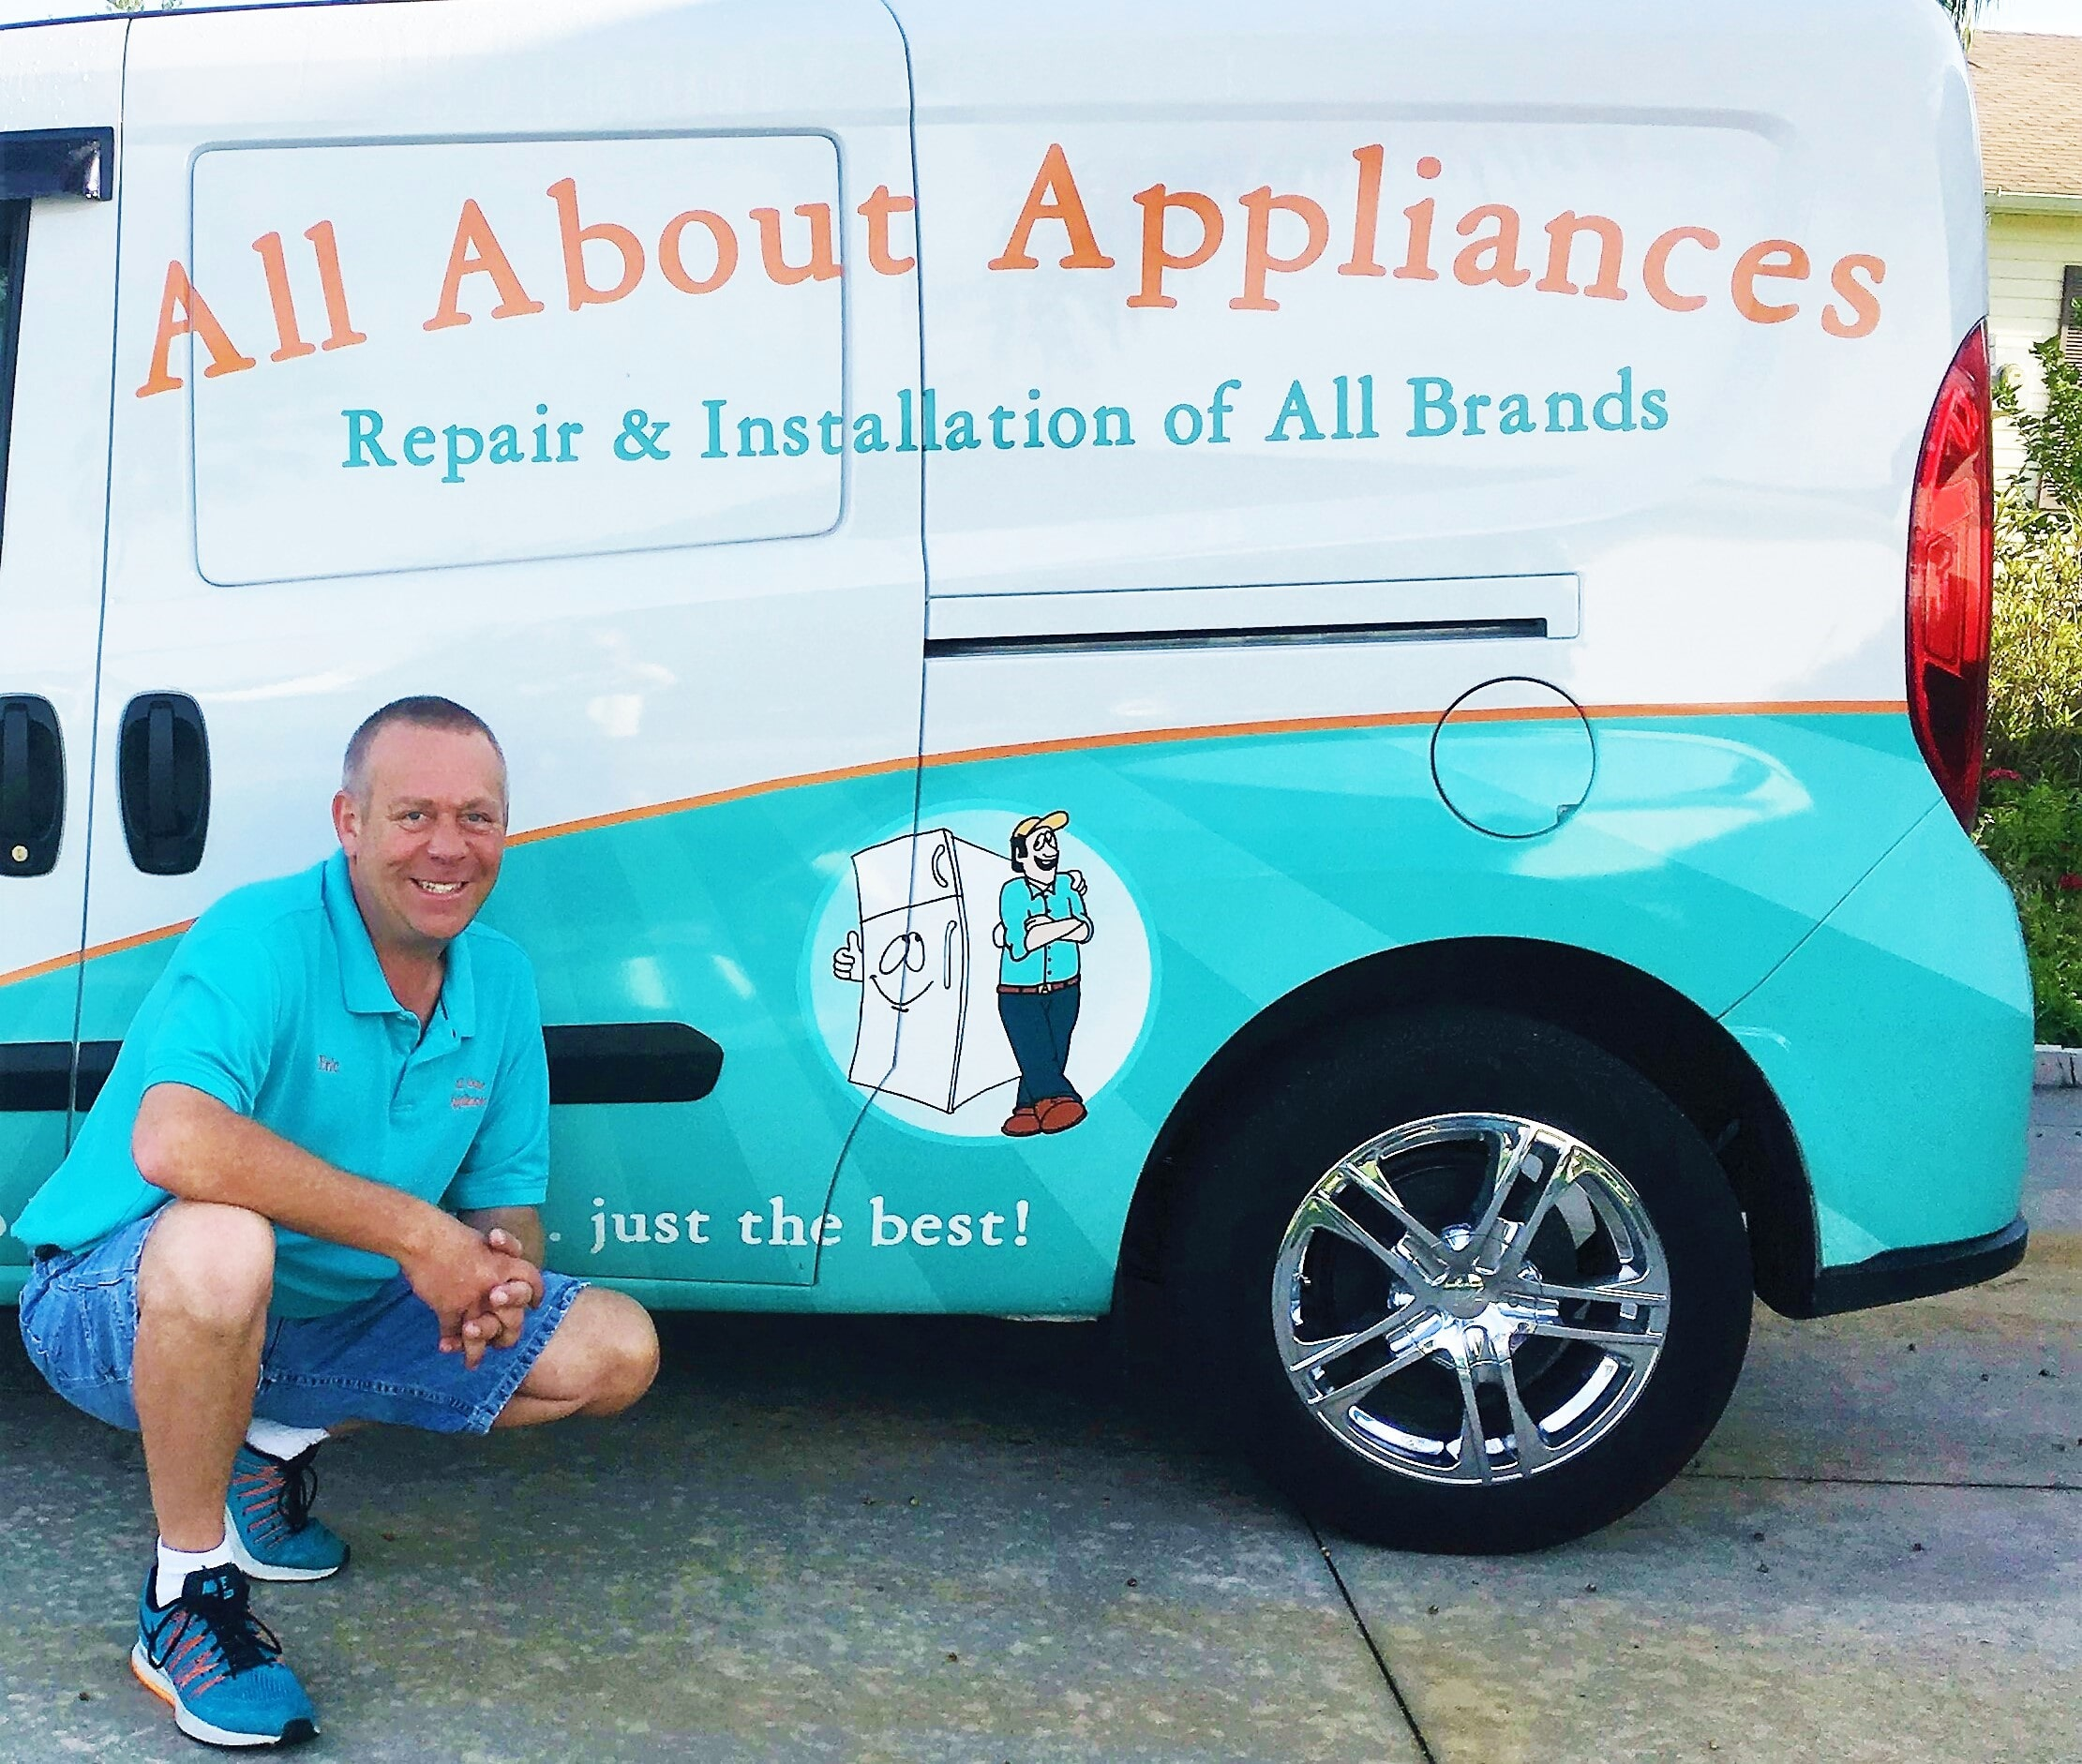 all about appliance vehicle —  appliance installation in Leesburg, FL